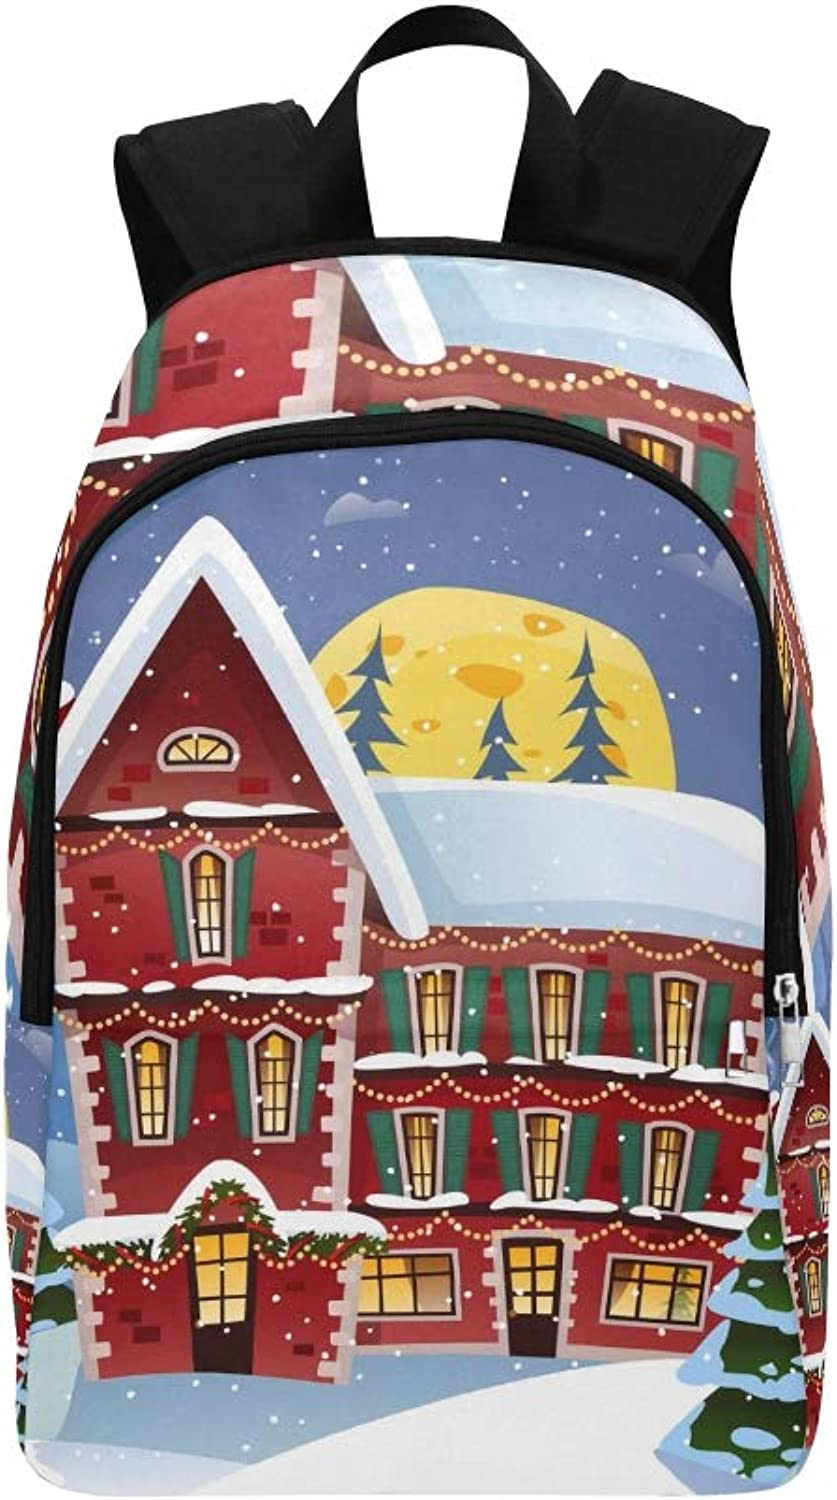 Christmas Night Poster Fairy Tower Snowfall Casual Daypack Travel Bag College School Backpack for Mens and Women